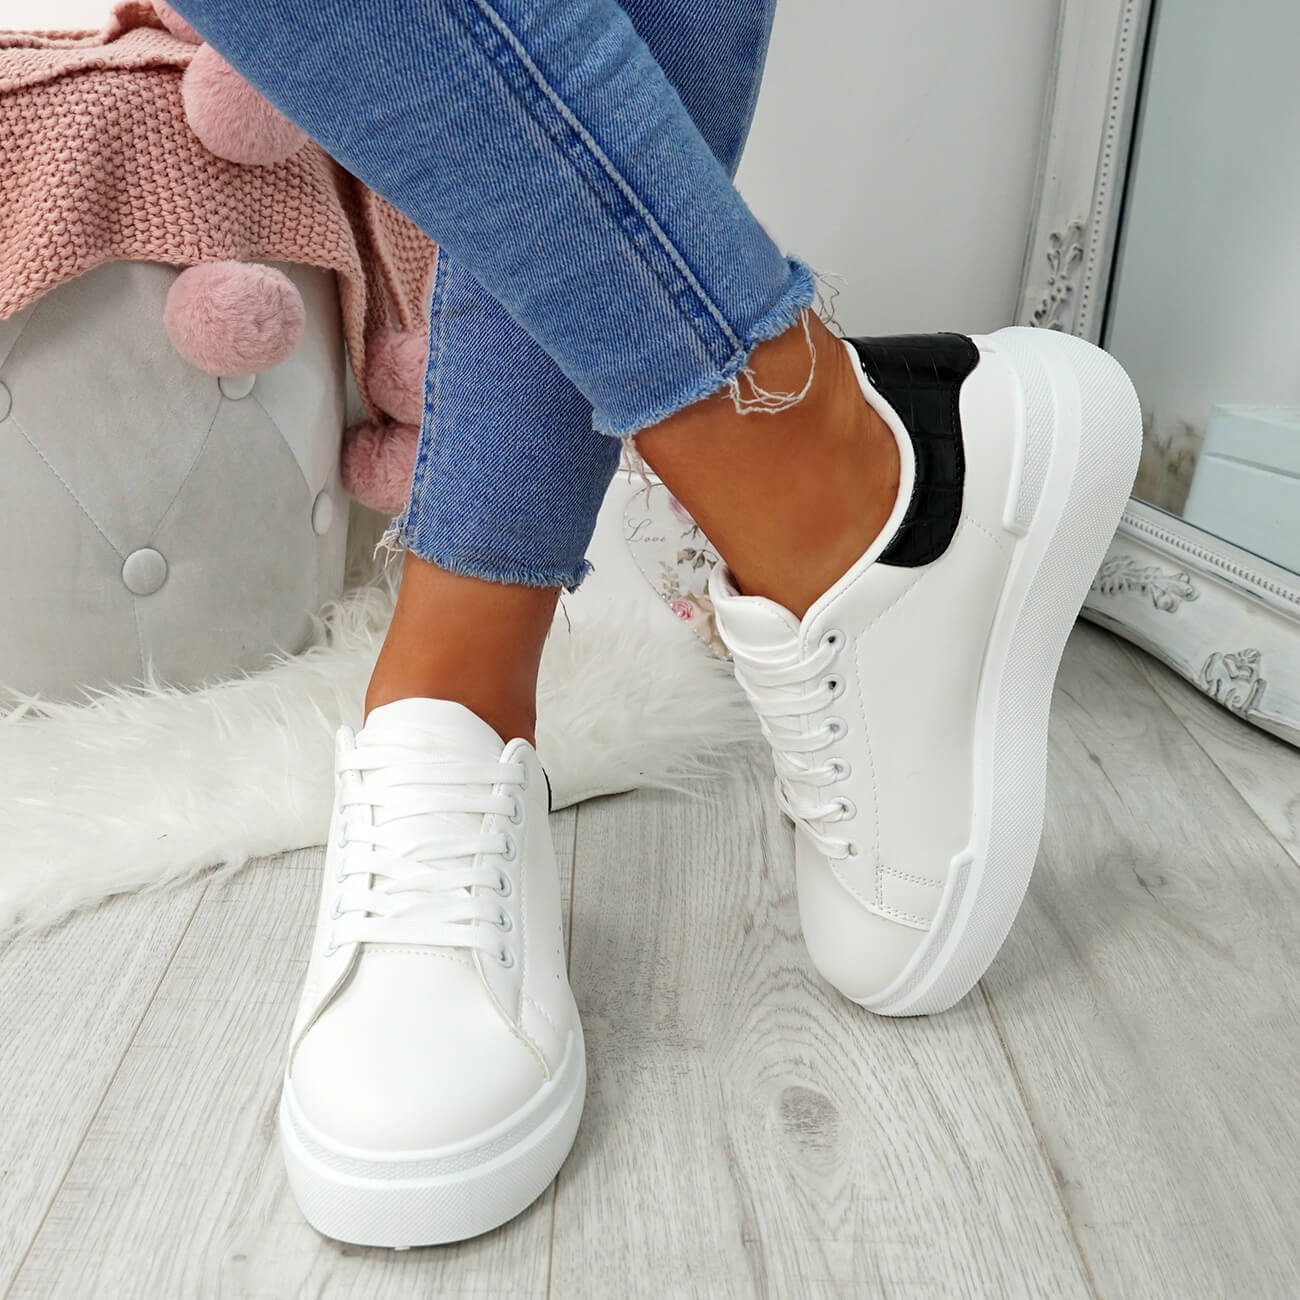 WOMENS-LADIES-LACE-UP-PLIMSOLL-SNEAKERS-CROC-SNAKE-TRAINERS-CASUAL-SHOES-SIZE thumbnail 23